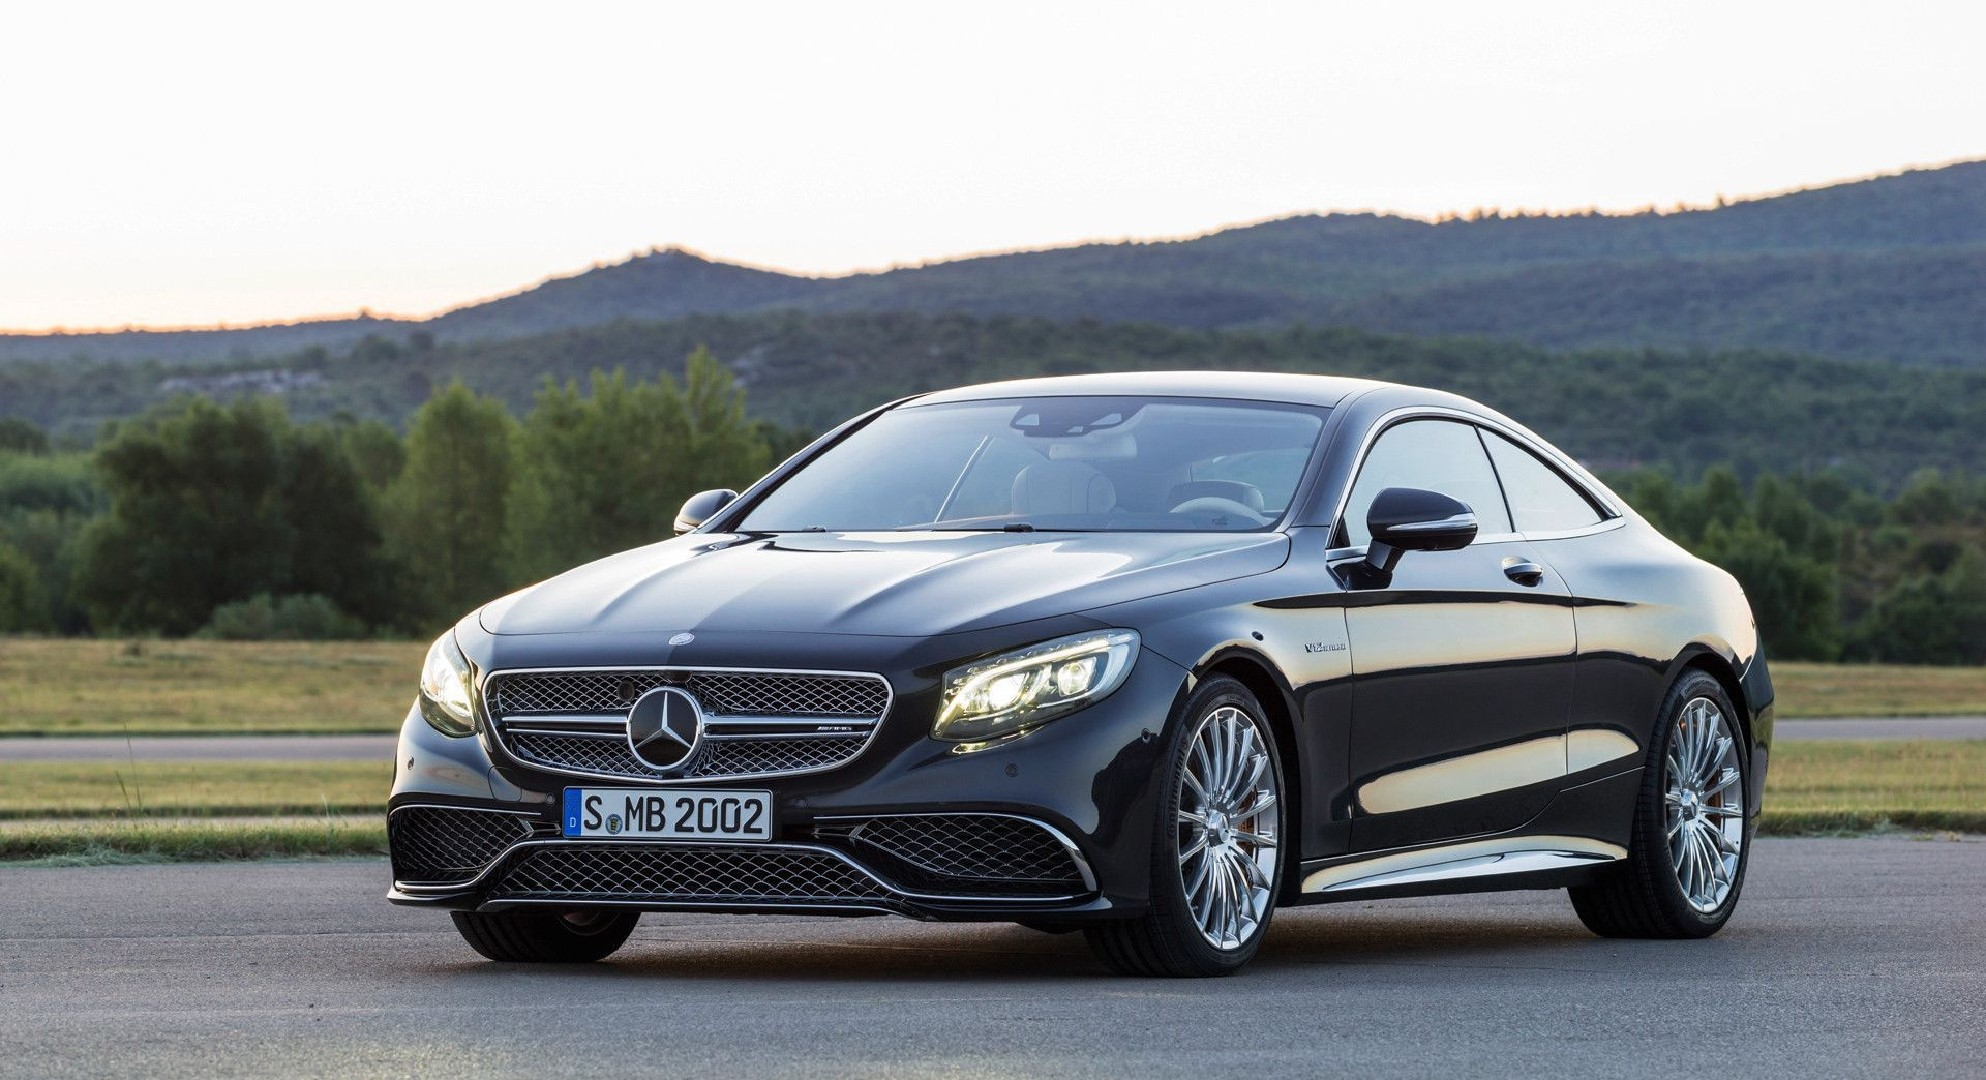 Mercedes Benz S65 AMG Laptop Wallpapers